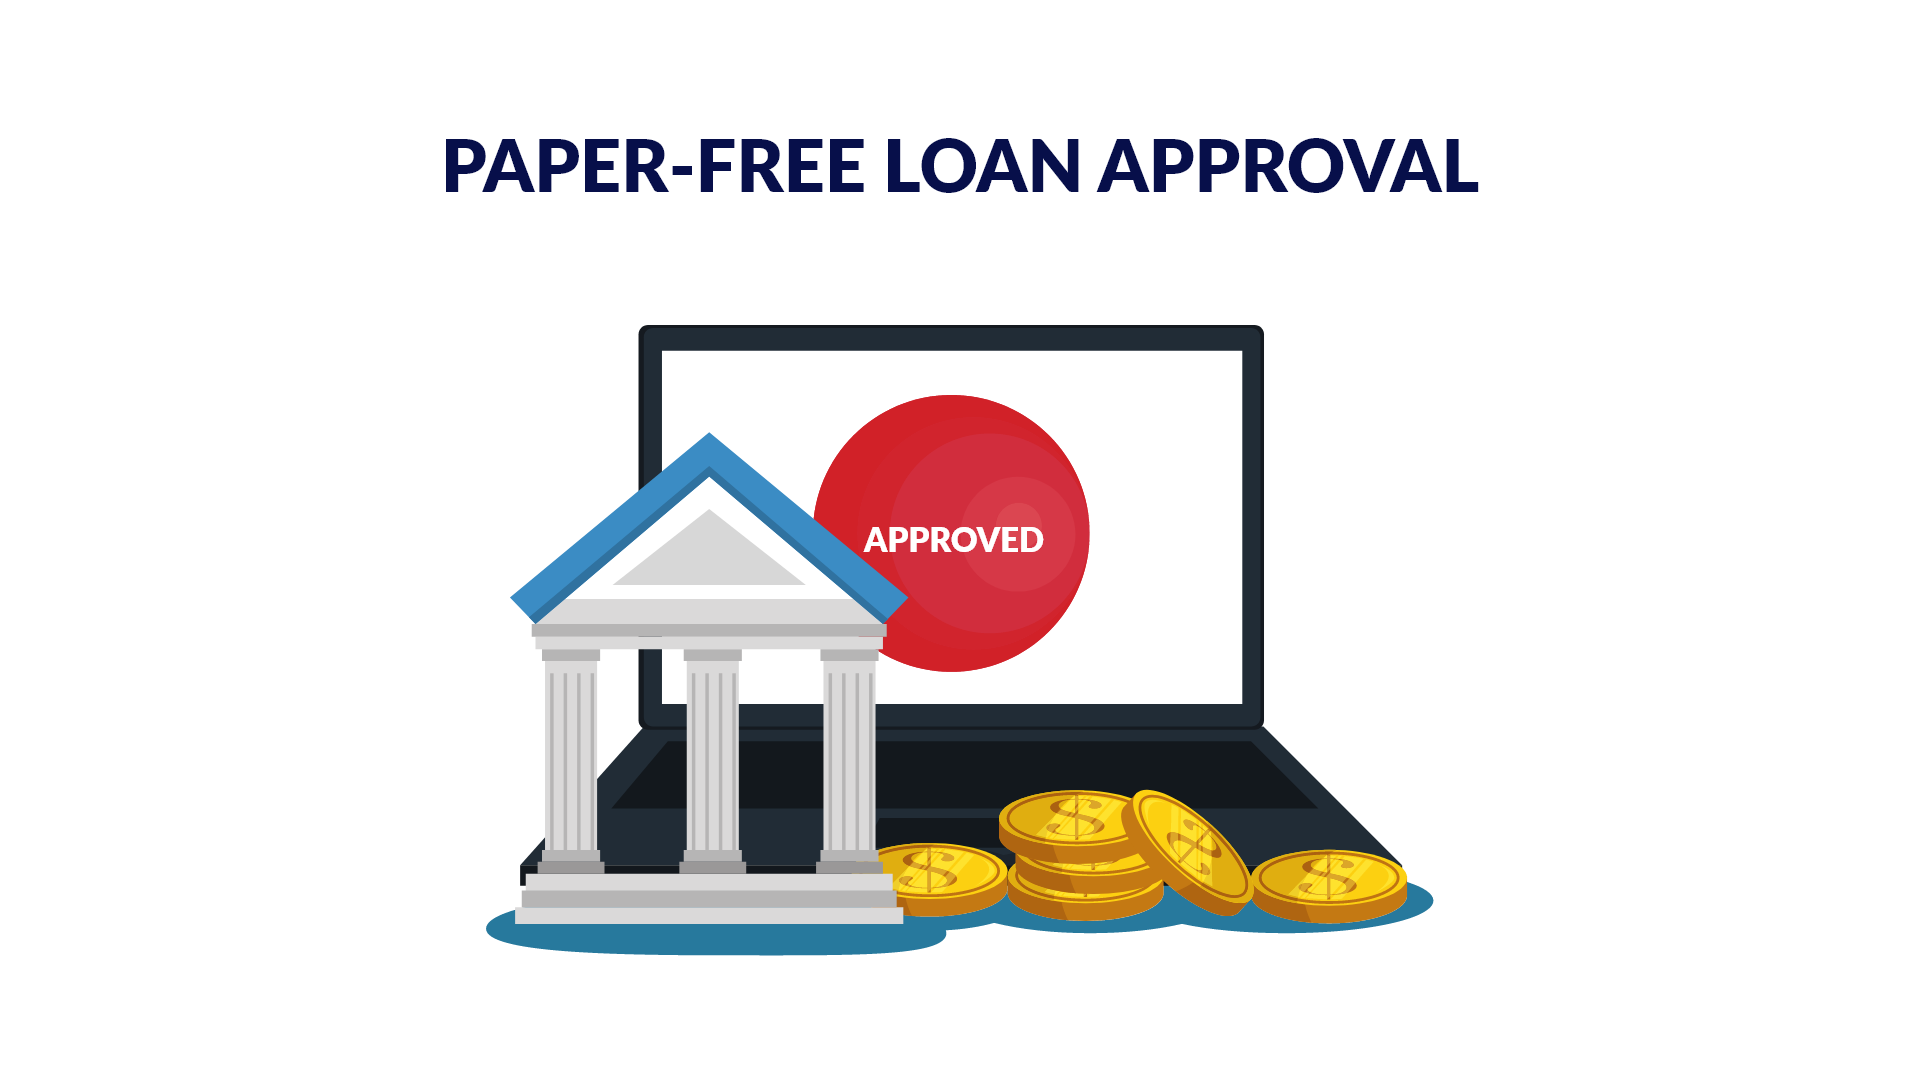 CRE Paperless loan approval